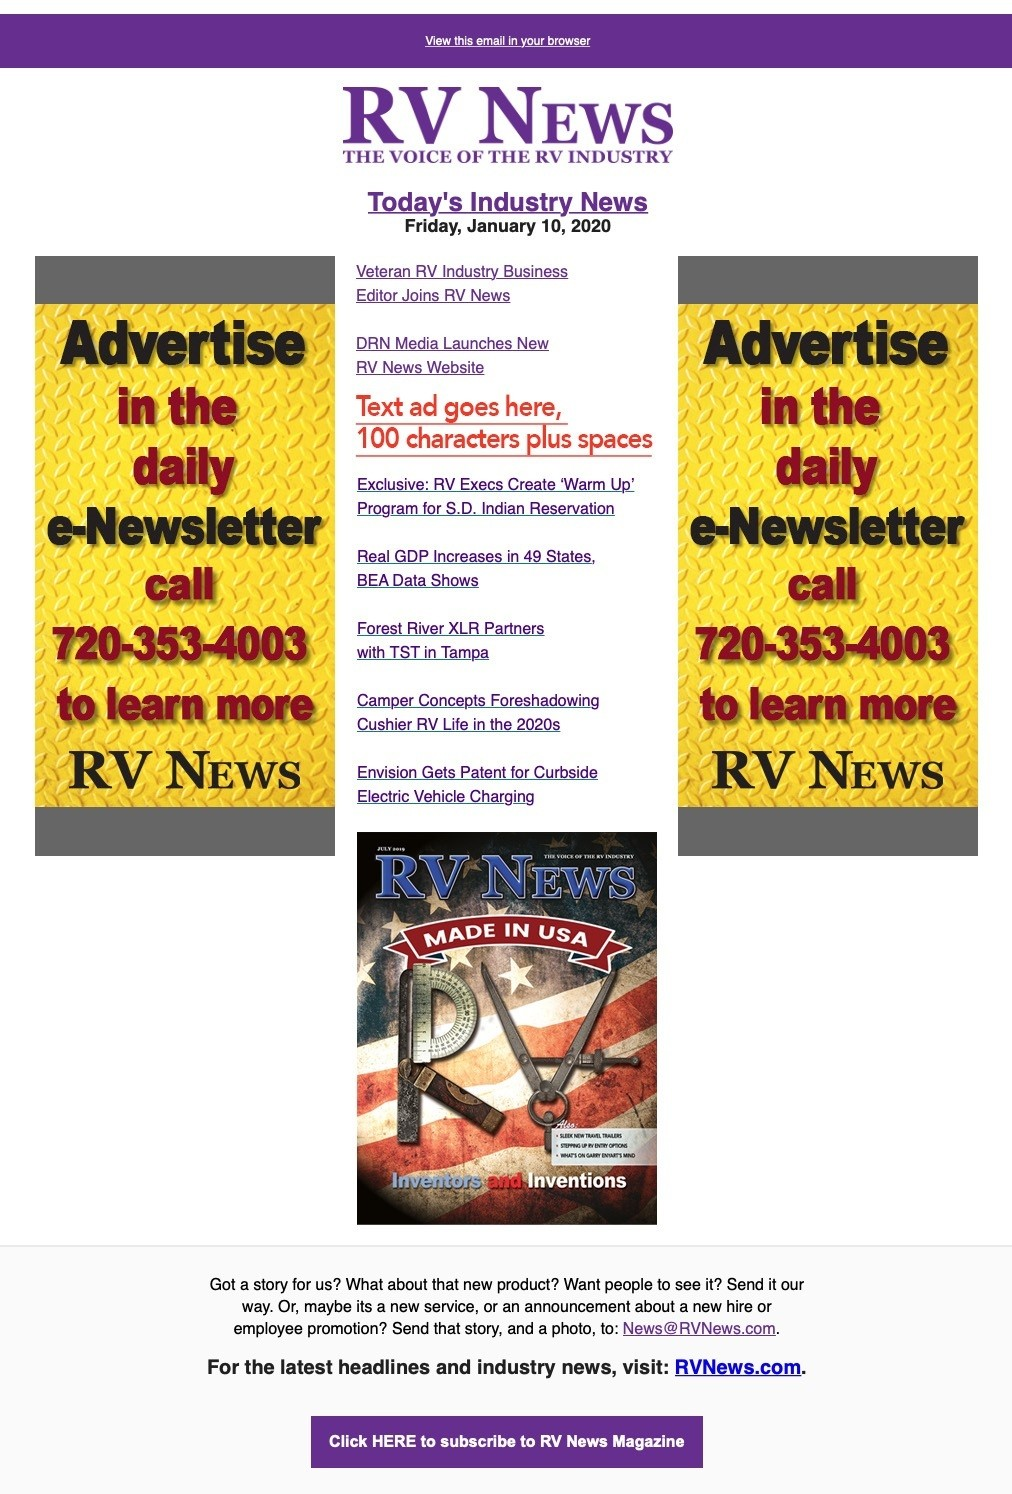 RV News enewsletter template with advertising spots